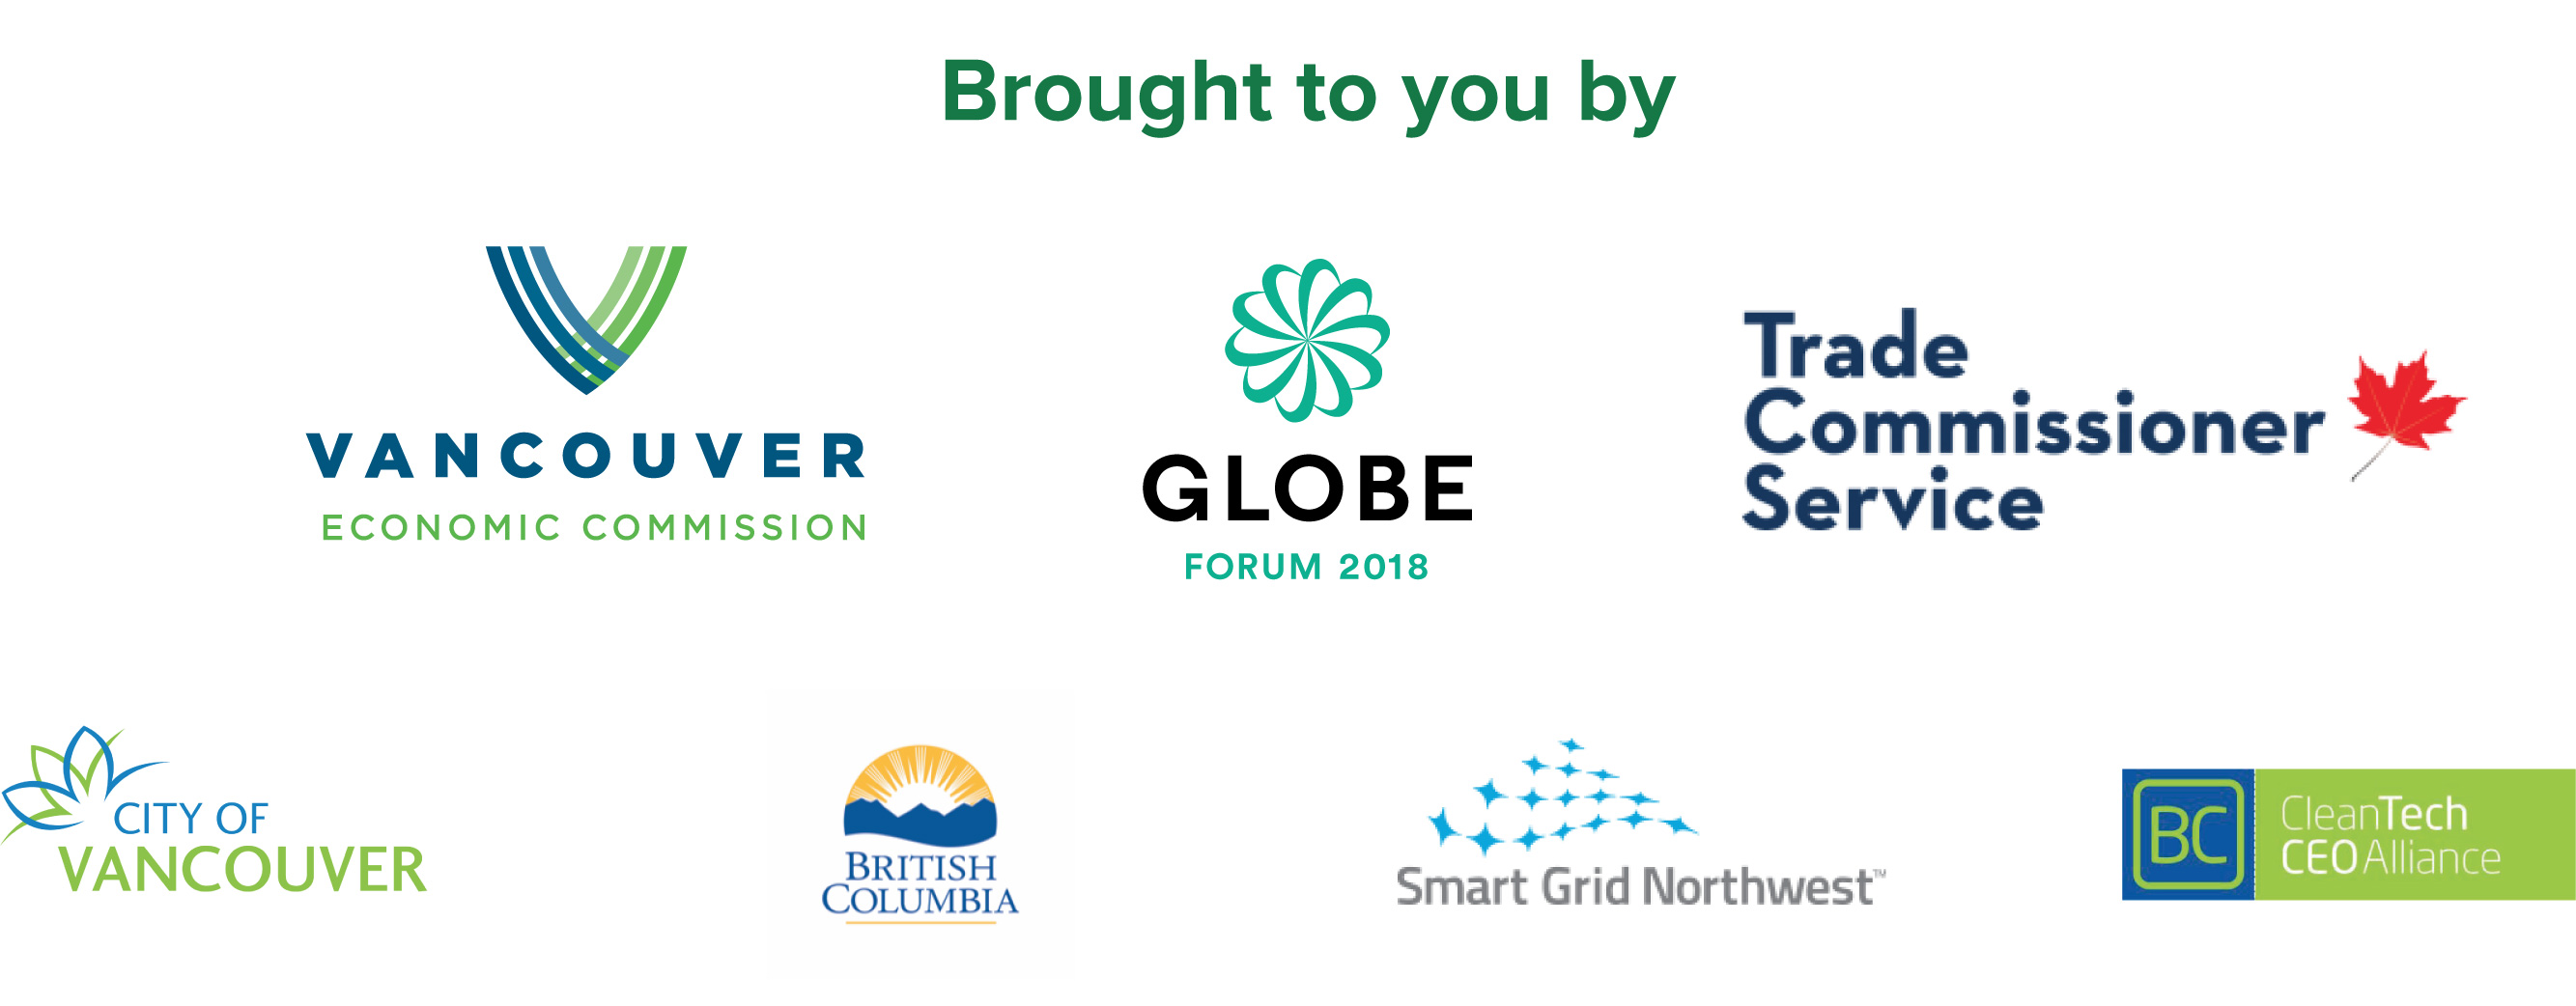 Cascadia Connect is organized and led by the Vancouver Economic Commission with support from our partners, including the City of Vancouver, Global Affairs Canada, SmartGrid Northwest, the BC Cleantech CEO Alliance, and the GLOBE Forum.